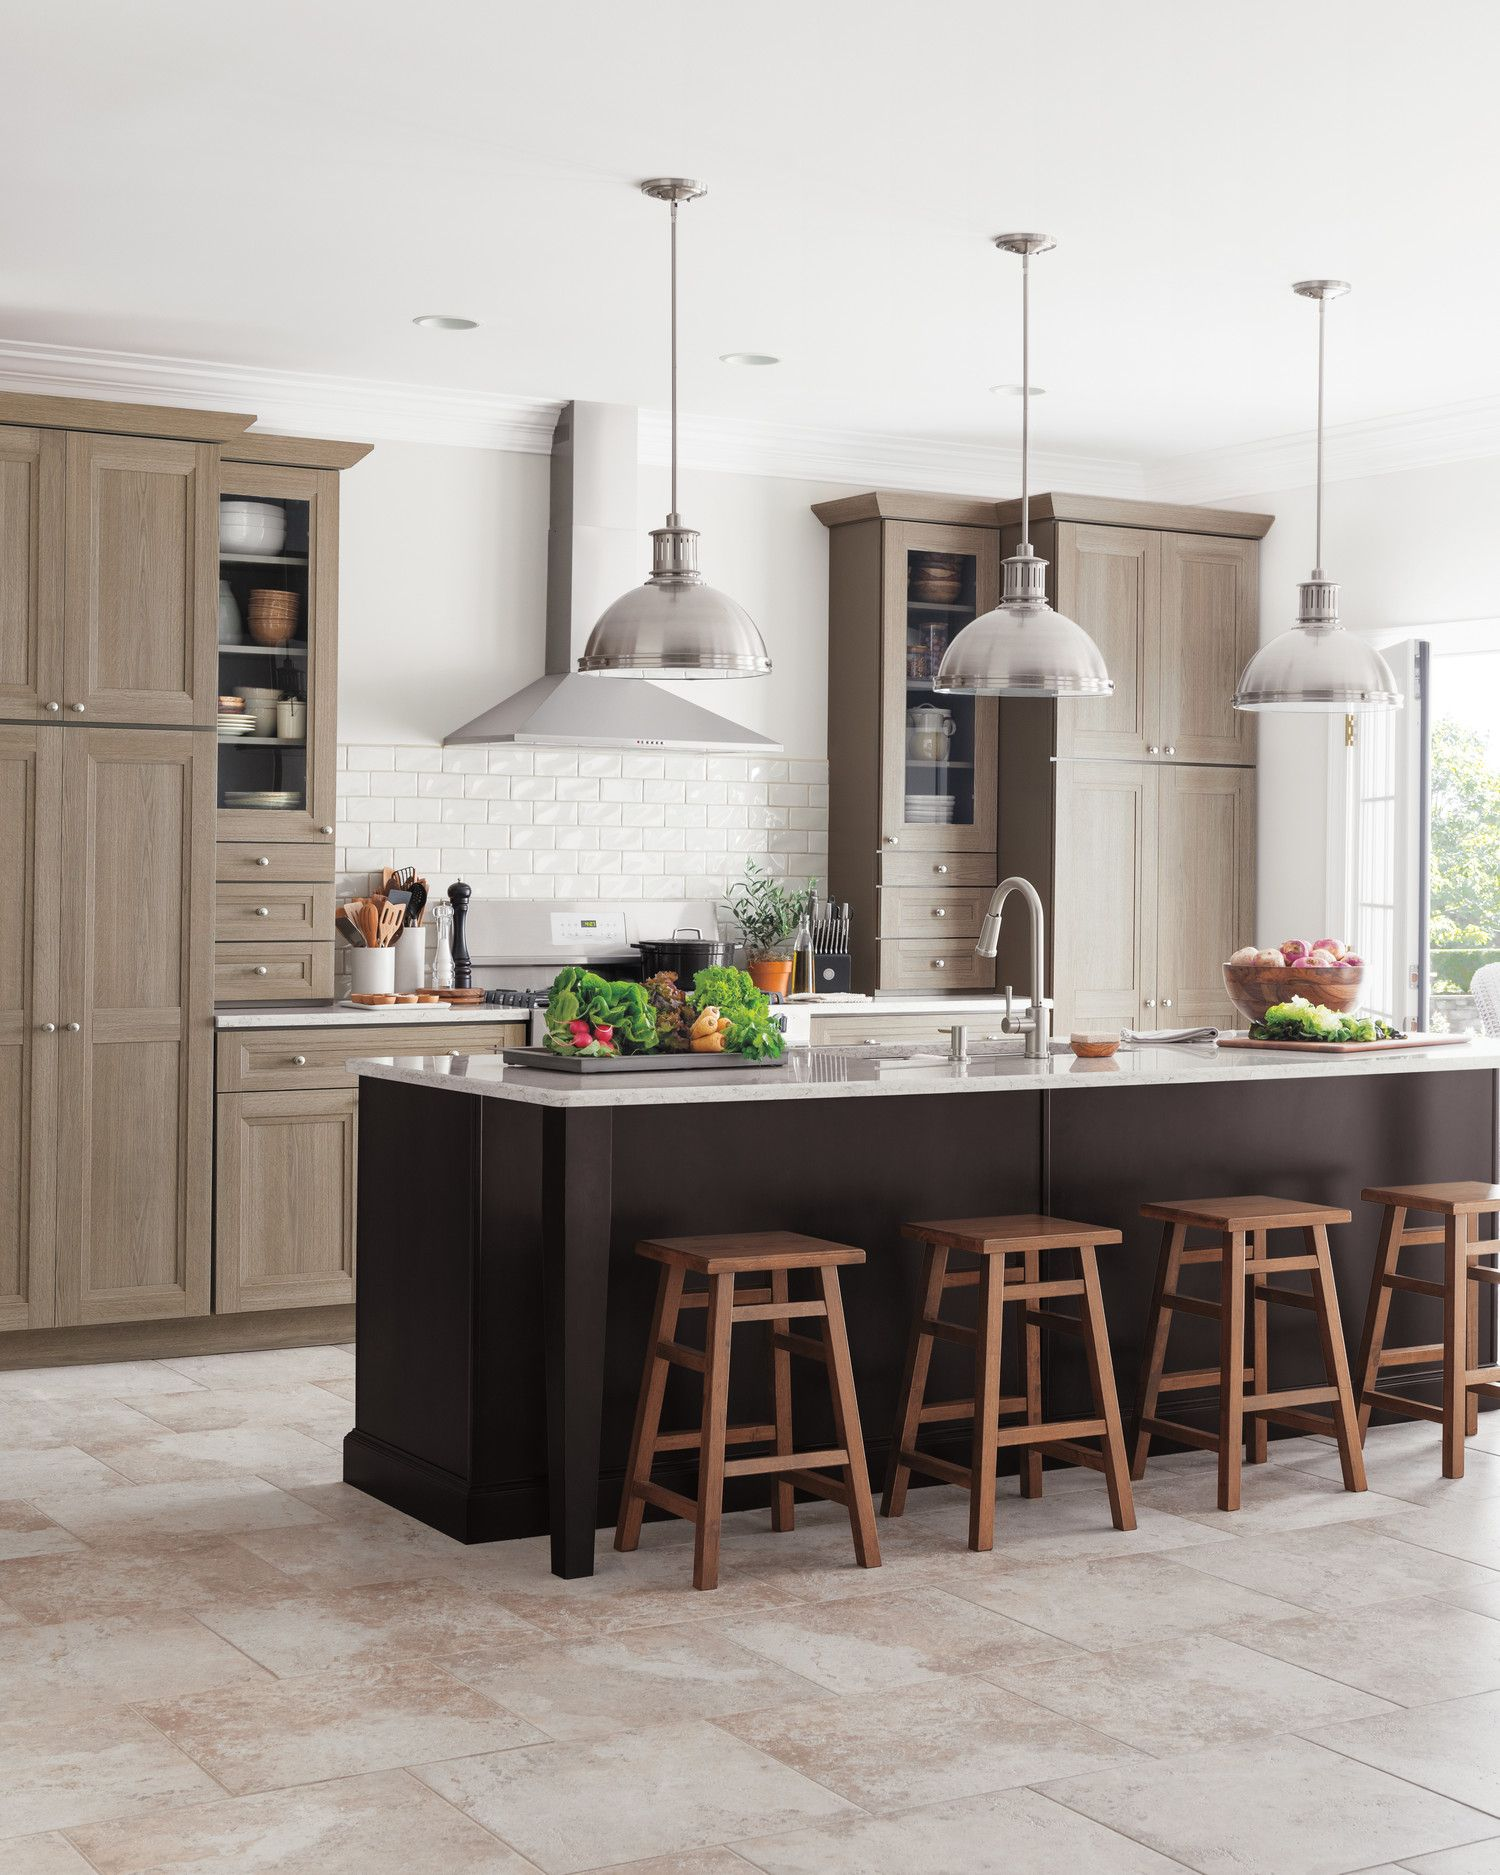 Shaker interior door styles living kitchen designs from the home depot  neutral kitchen shaker